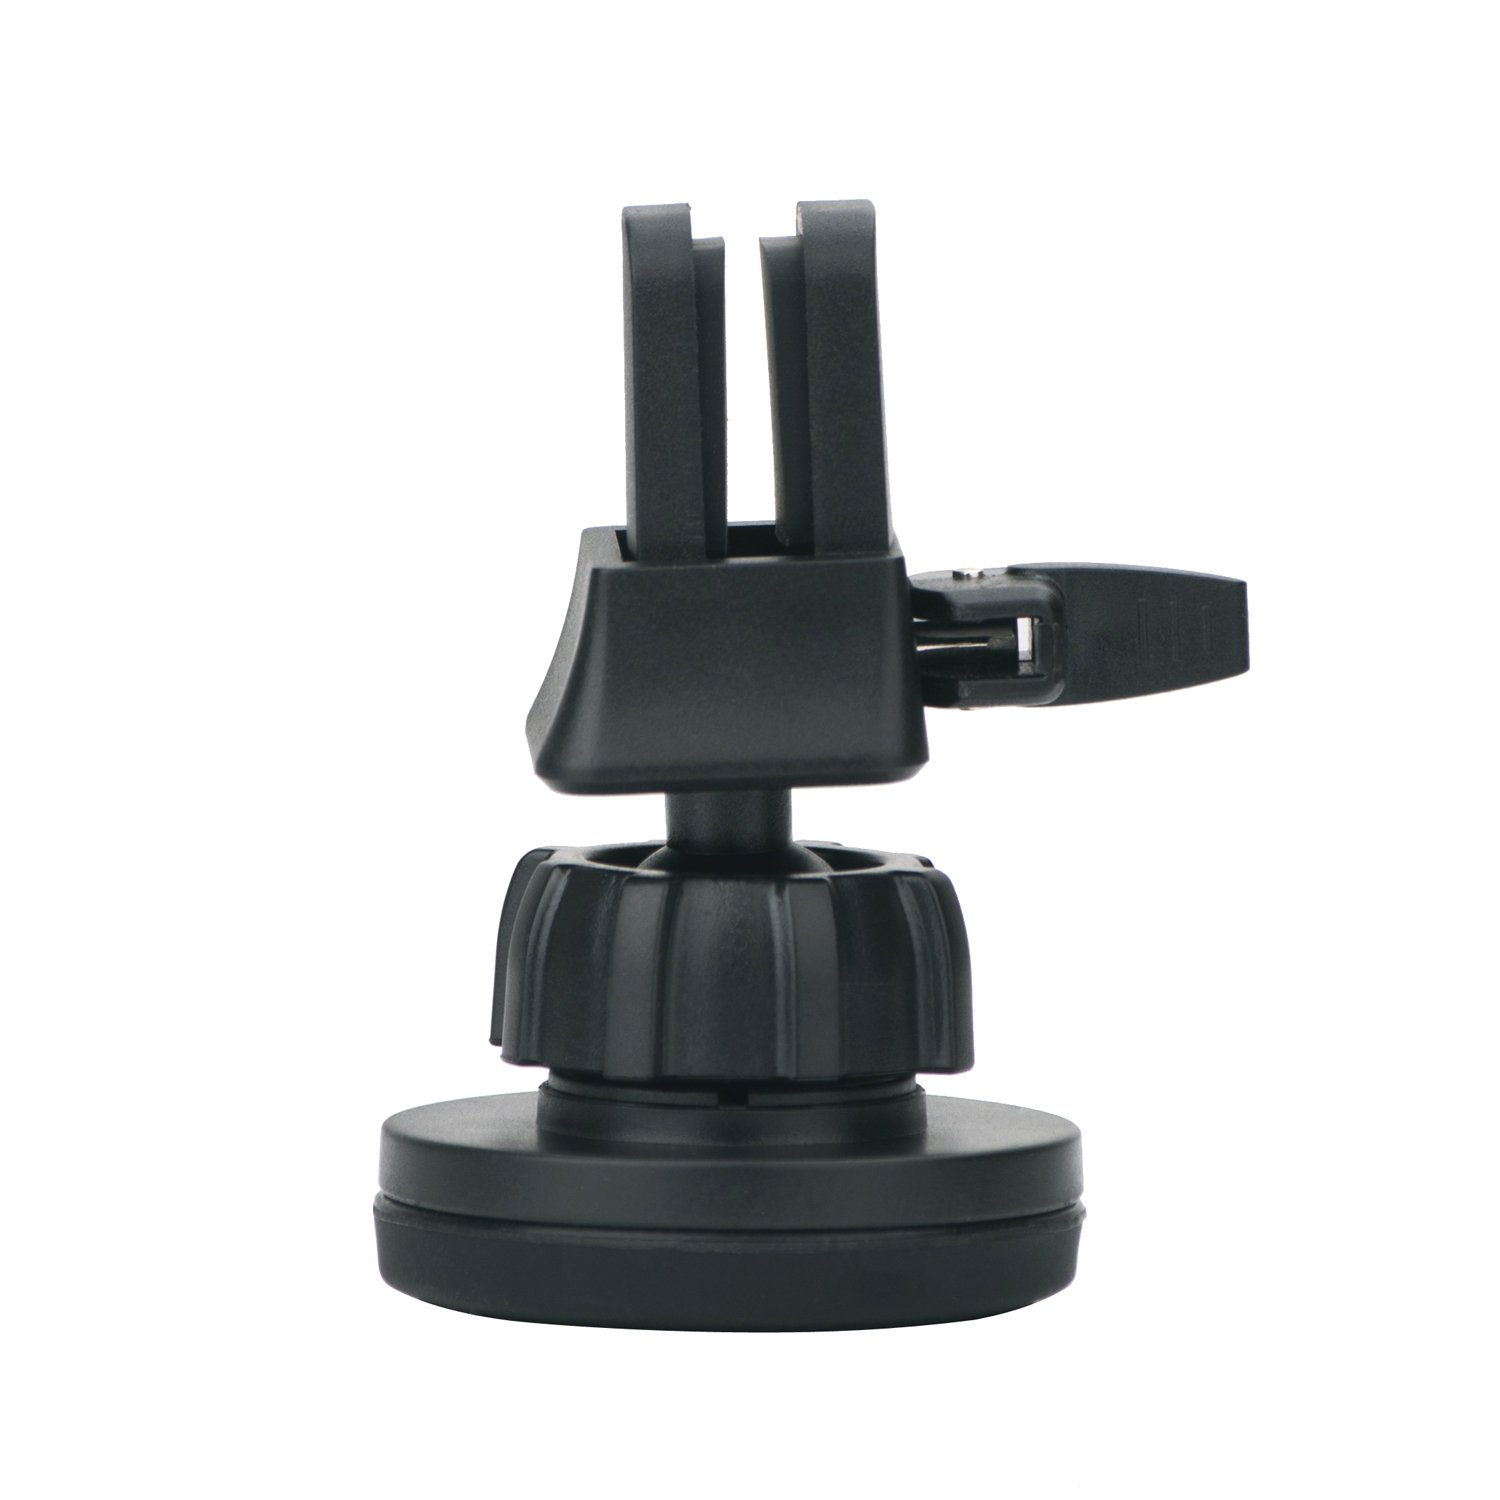 Ztechworld Quick Snap Air Vent Magnetic Car Mount Holder for iPhone 7 6 6S Plus// Samsung Galaxy S Plus S7 S6 Edge Note 360 Rotation Black Round Head ZTA046